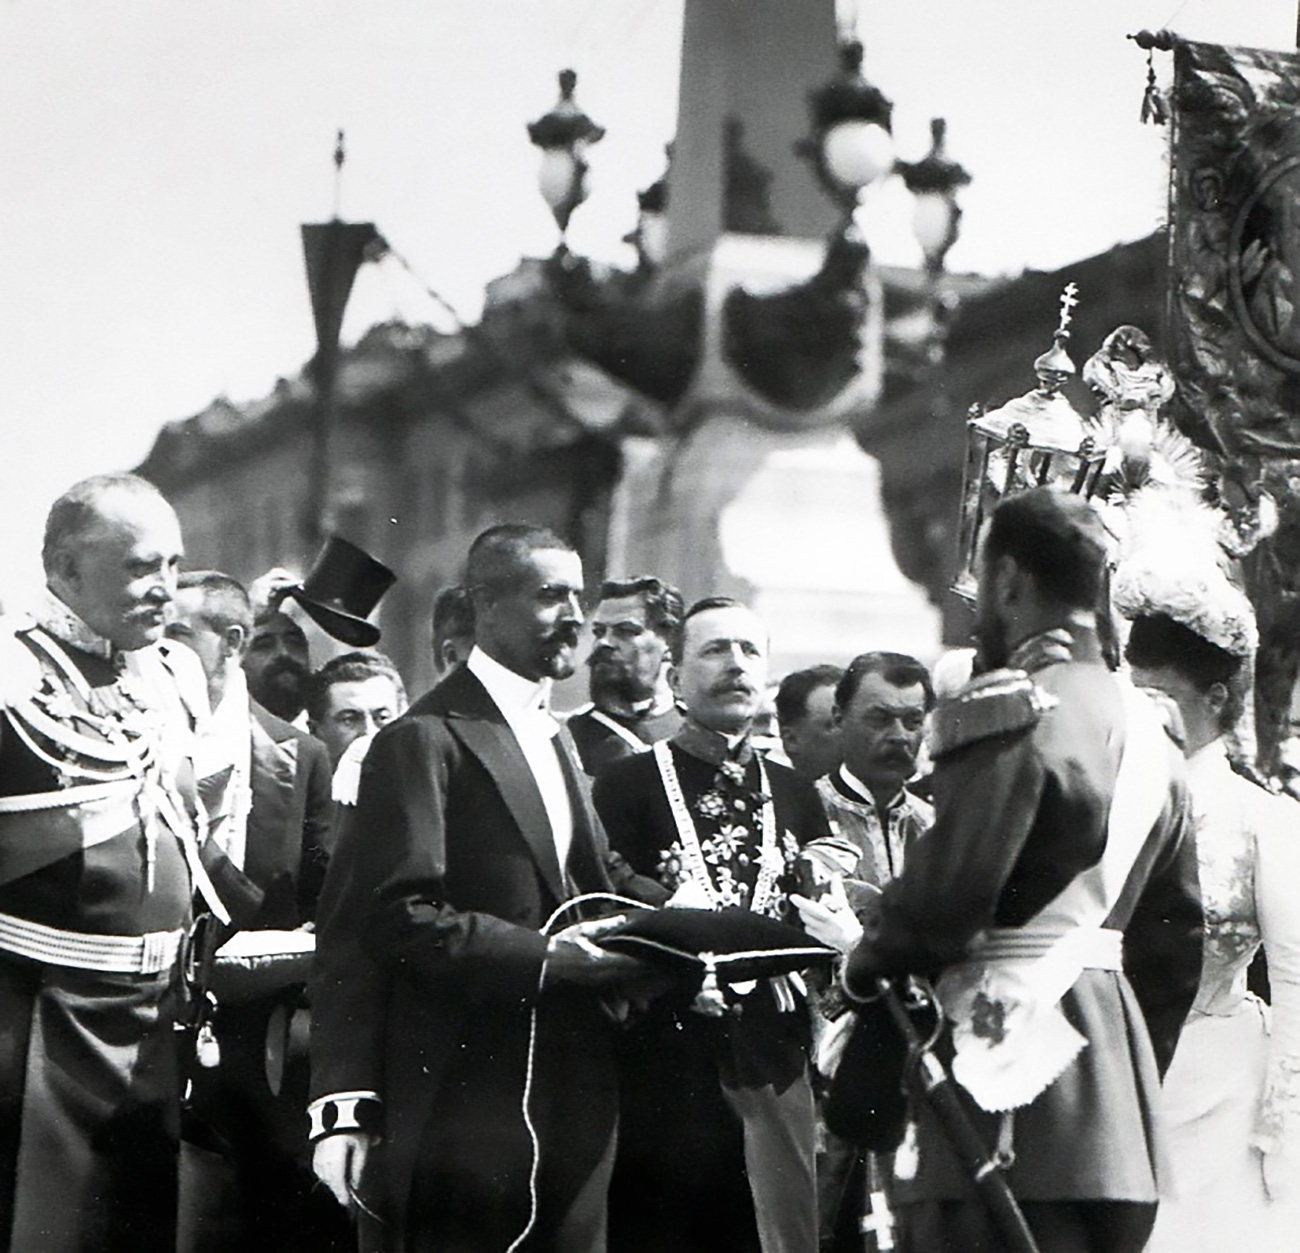 St. Petersburg head P. Lelyanov gives the Emperor Nicholas II a button to raise the drawbridge on the bridge opening day, May 16, 1903 / Archive Photo